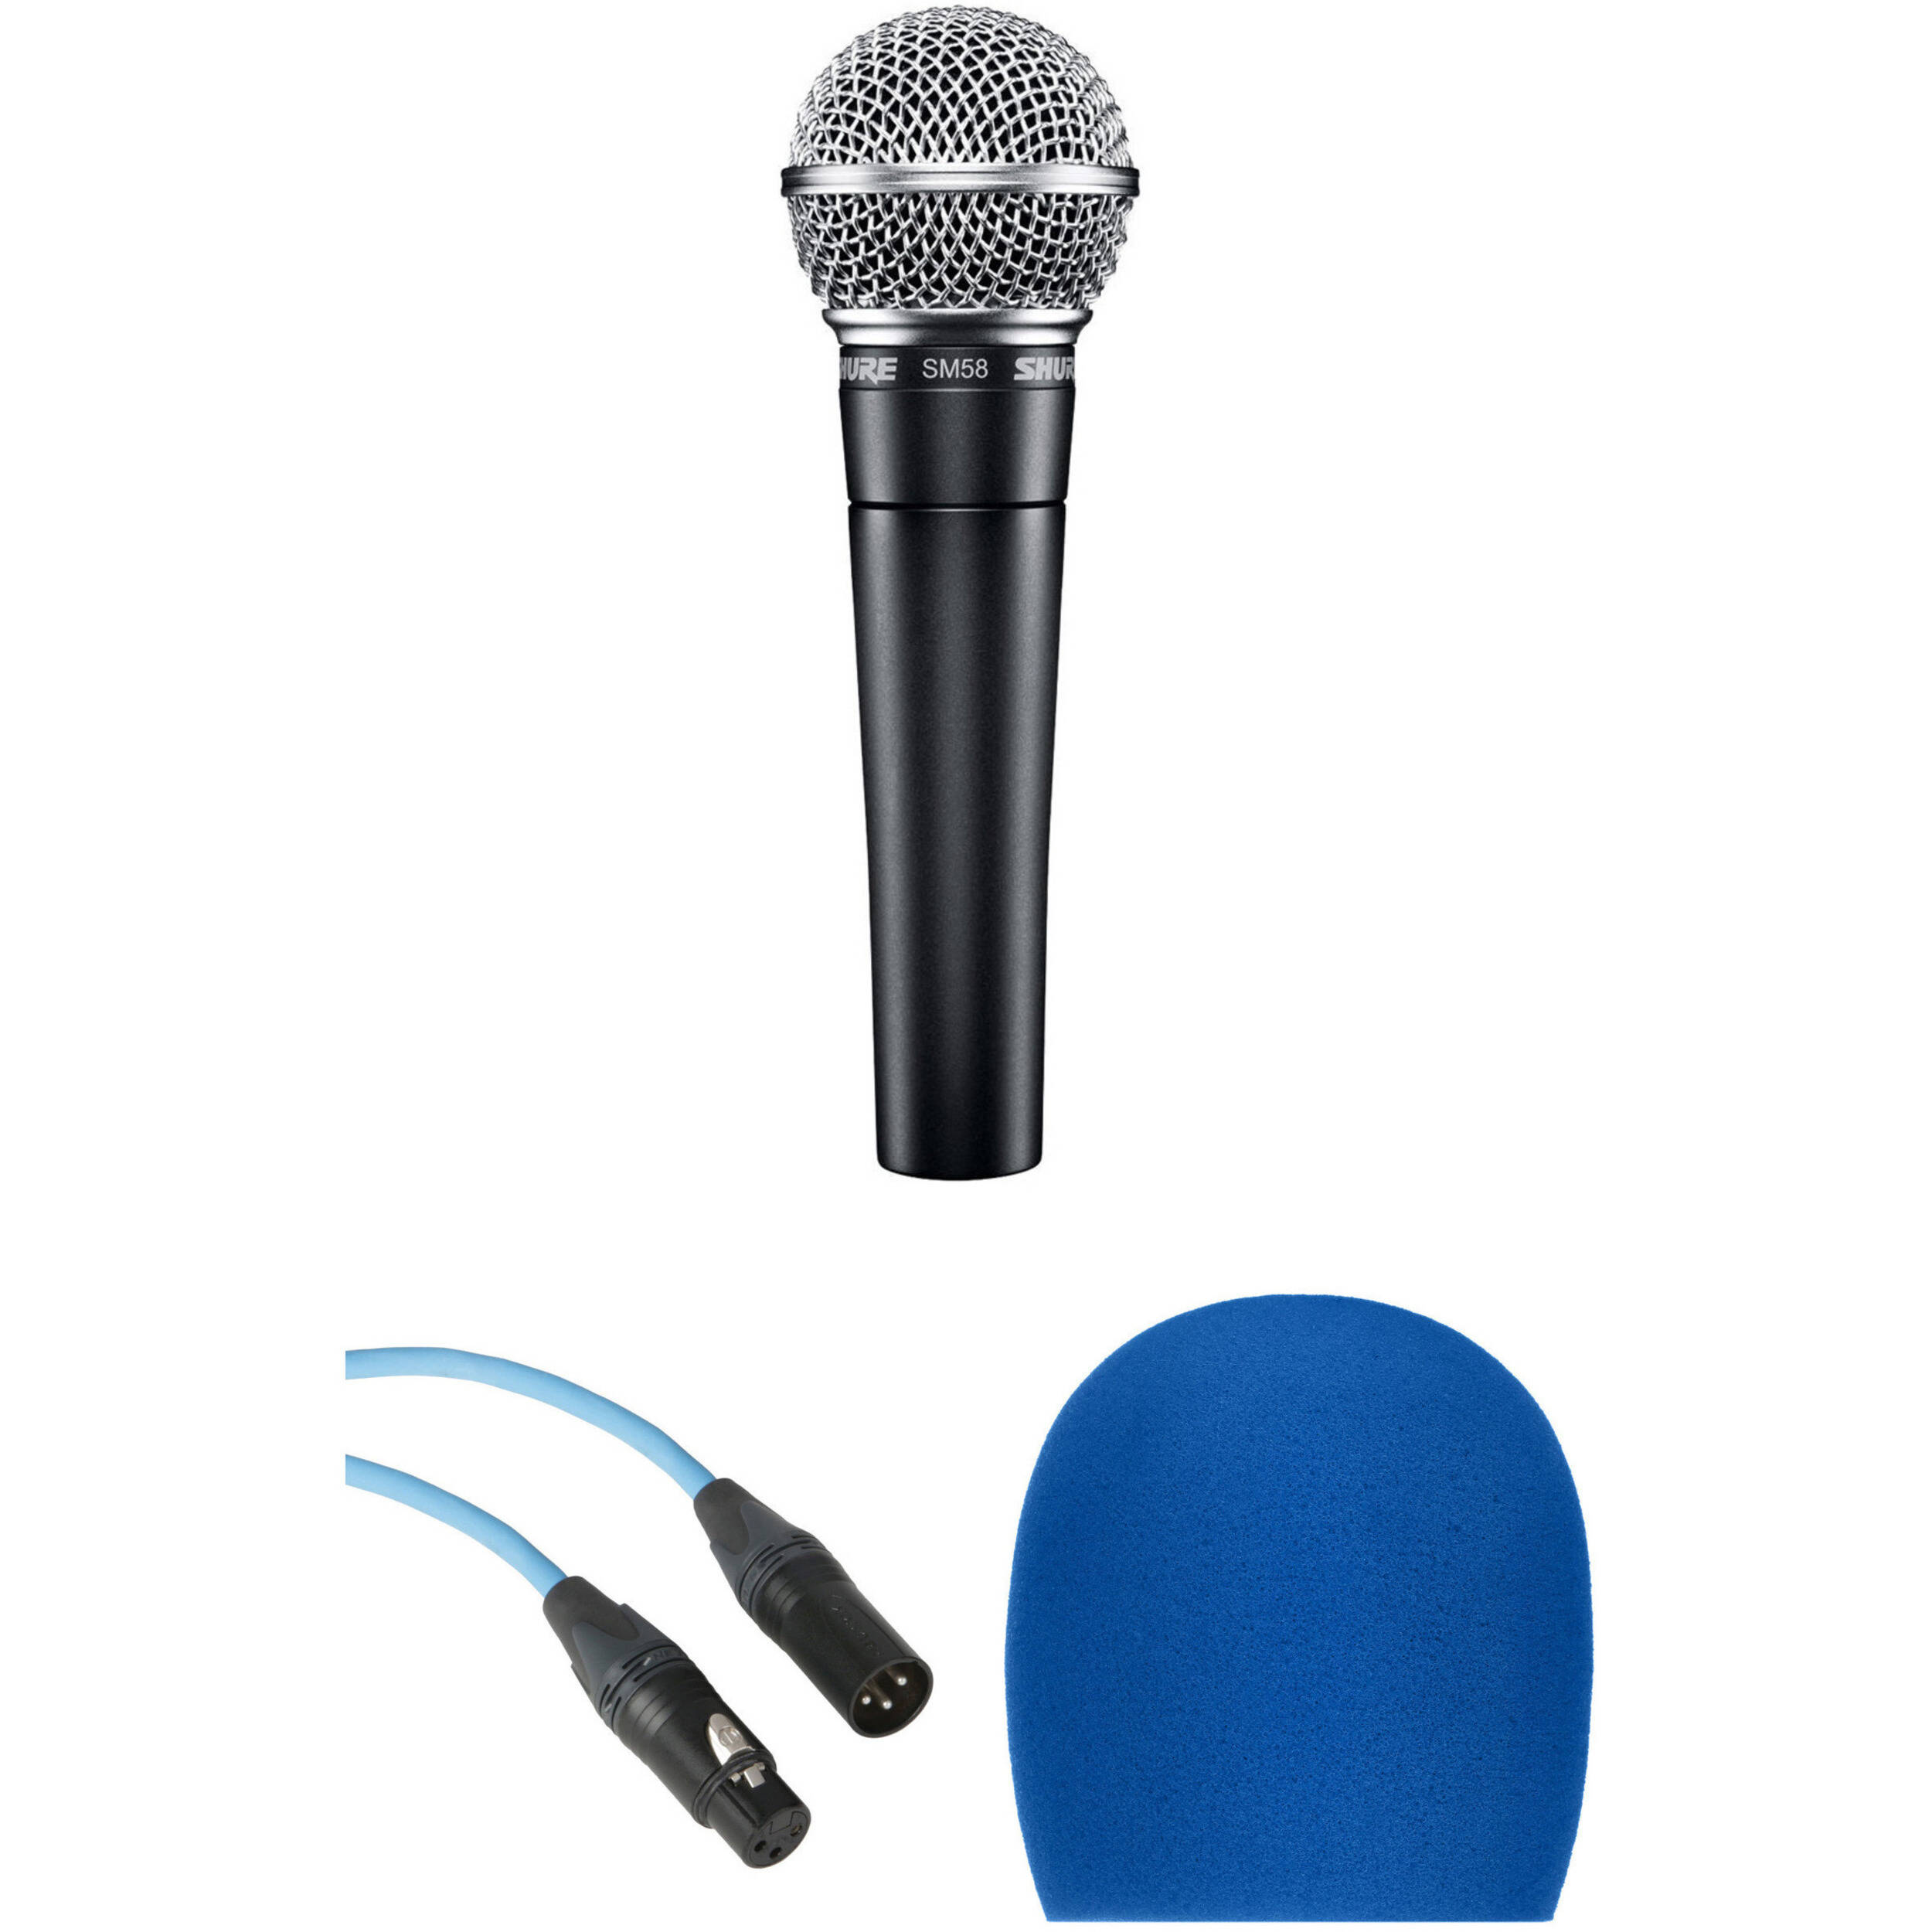 Shure SM58 Handheld Dynamic Microphone Kit (Blue Cable & Windscreen)